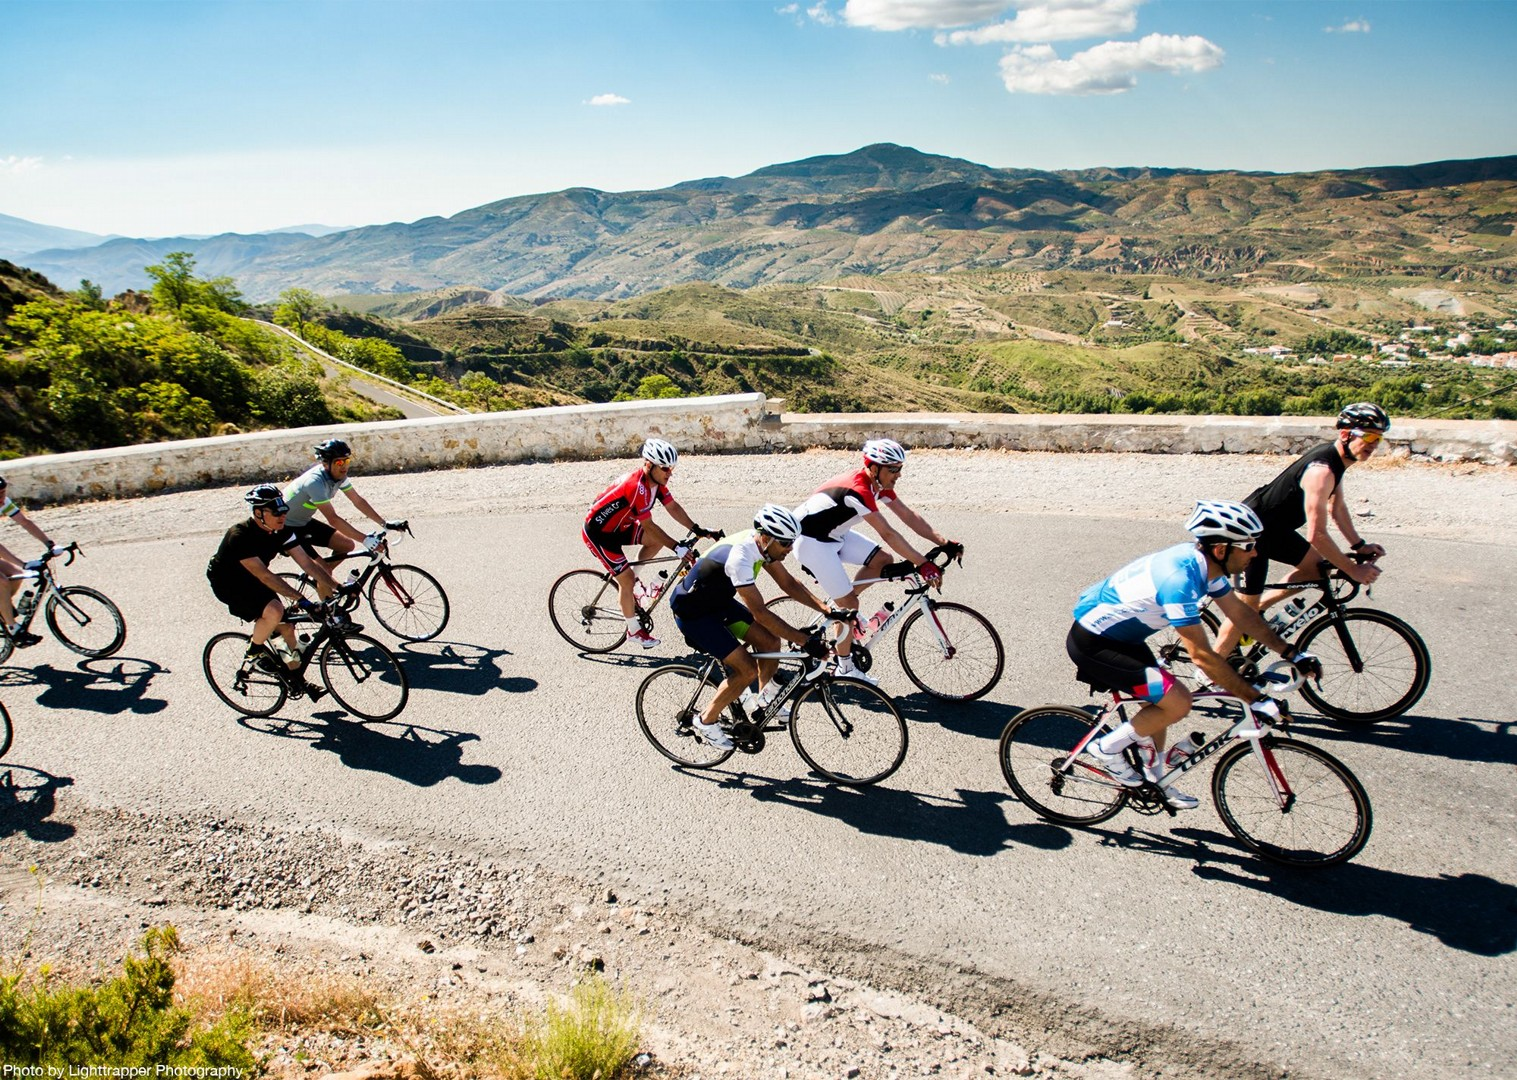 saddle-skedaddle-road-cycling-holiday-in-southern-spain-guided-tour.jpg - Southern Spain - Sierra Nevada and Granada - Guided Road Cycling Holiday - Road Cycling